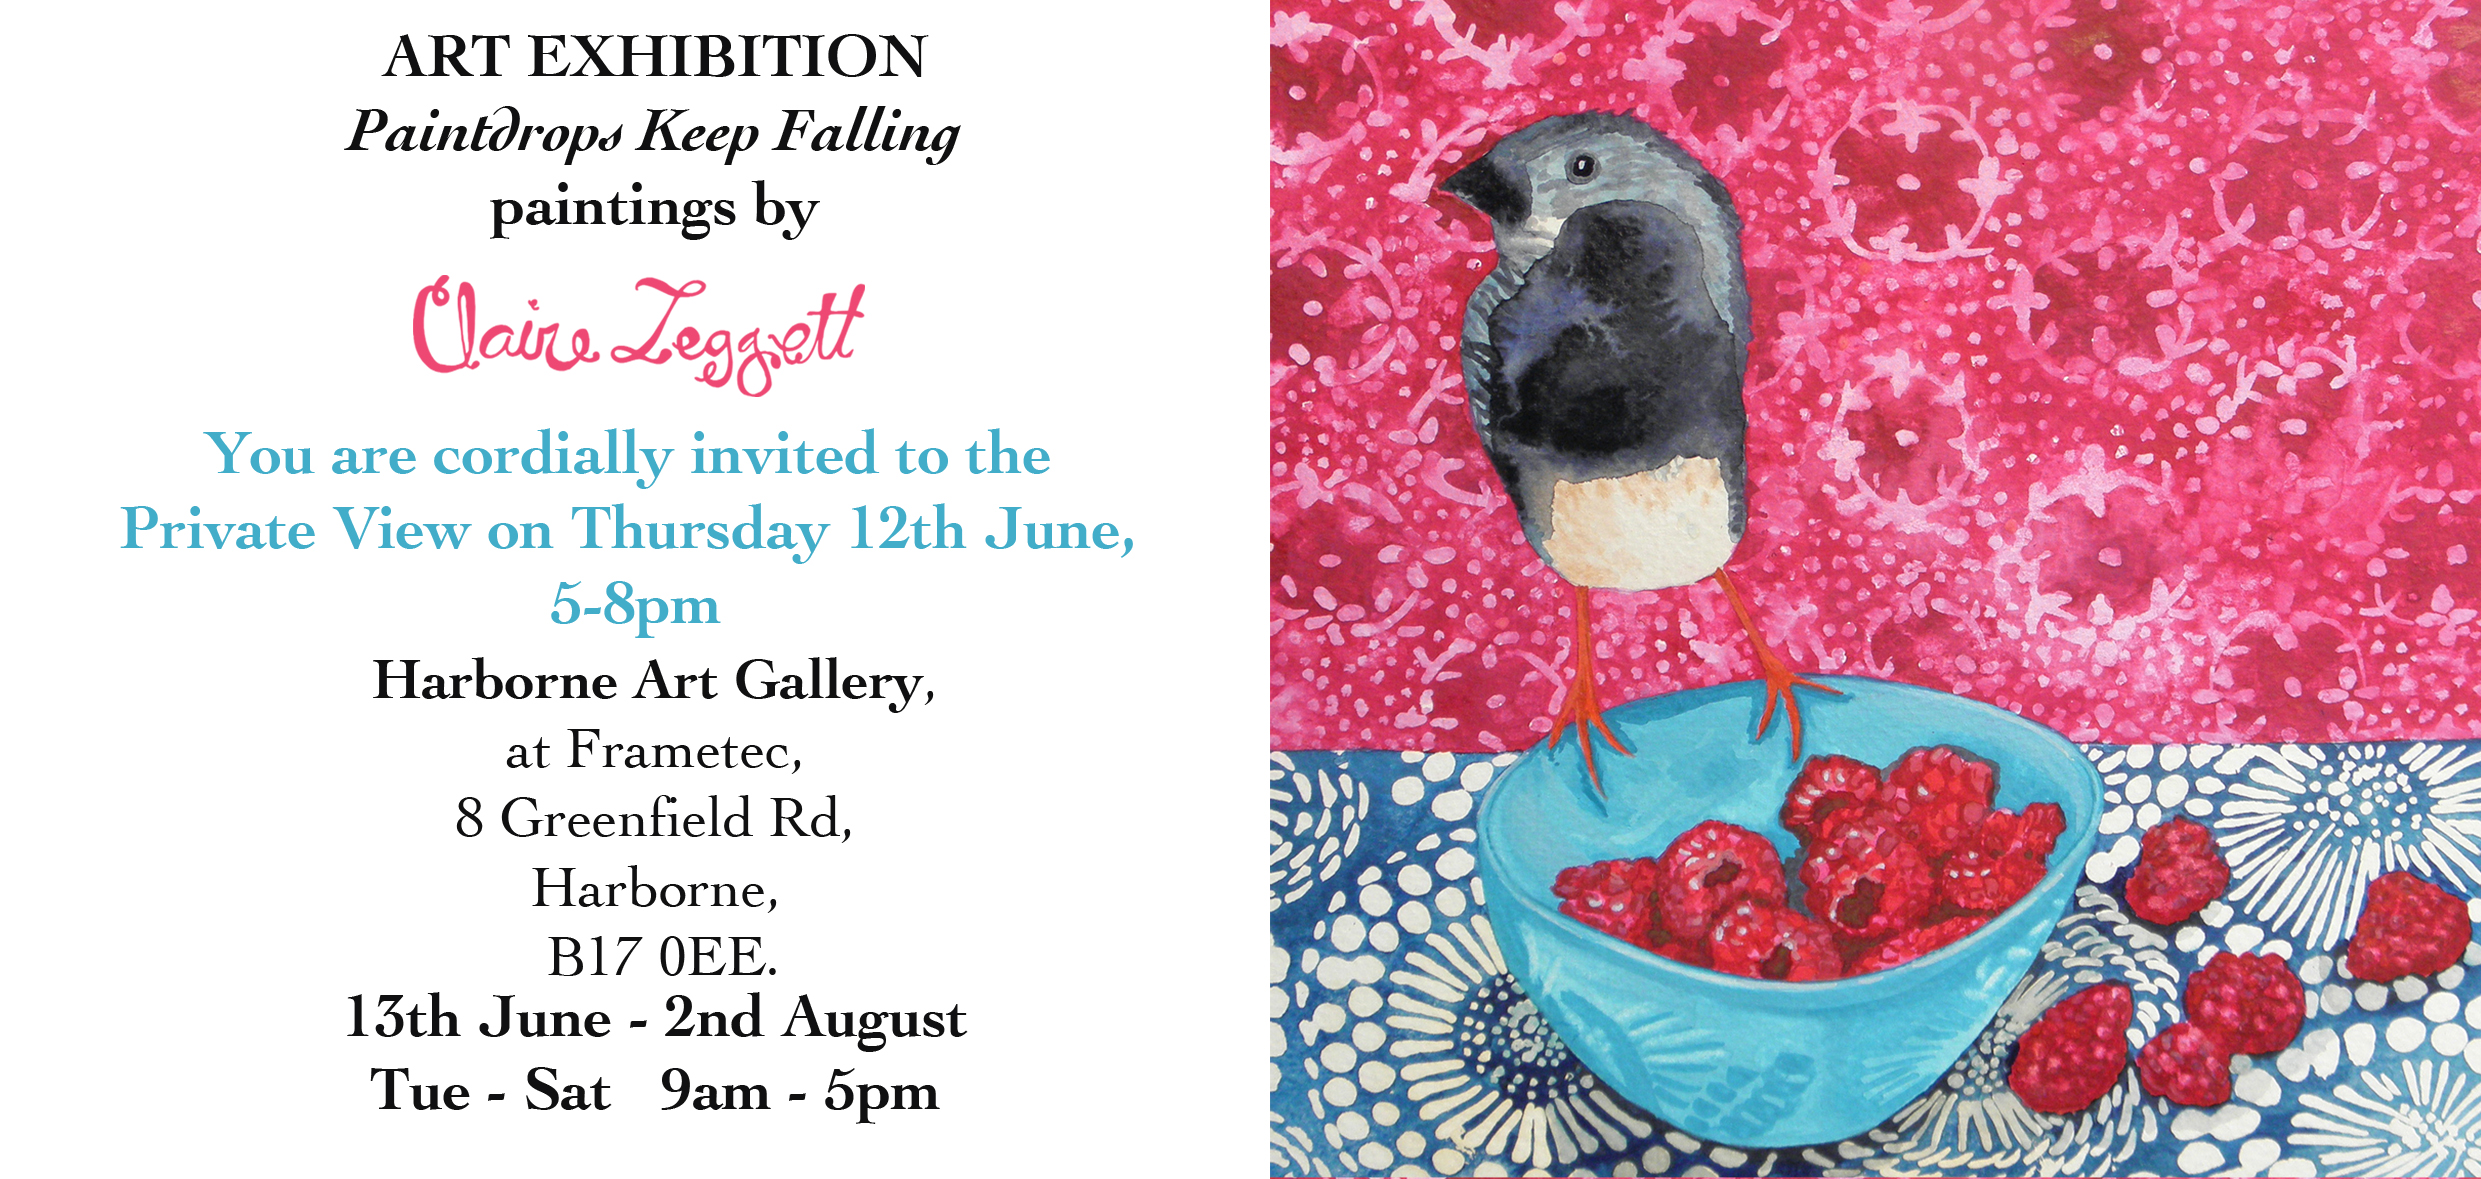 v3_private_view_email_Harborne_Art_Gallery_Claire_Leggett_show_poster